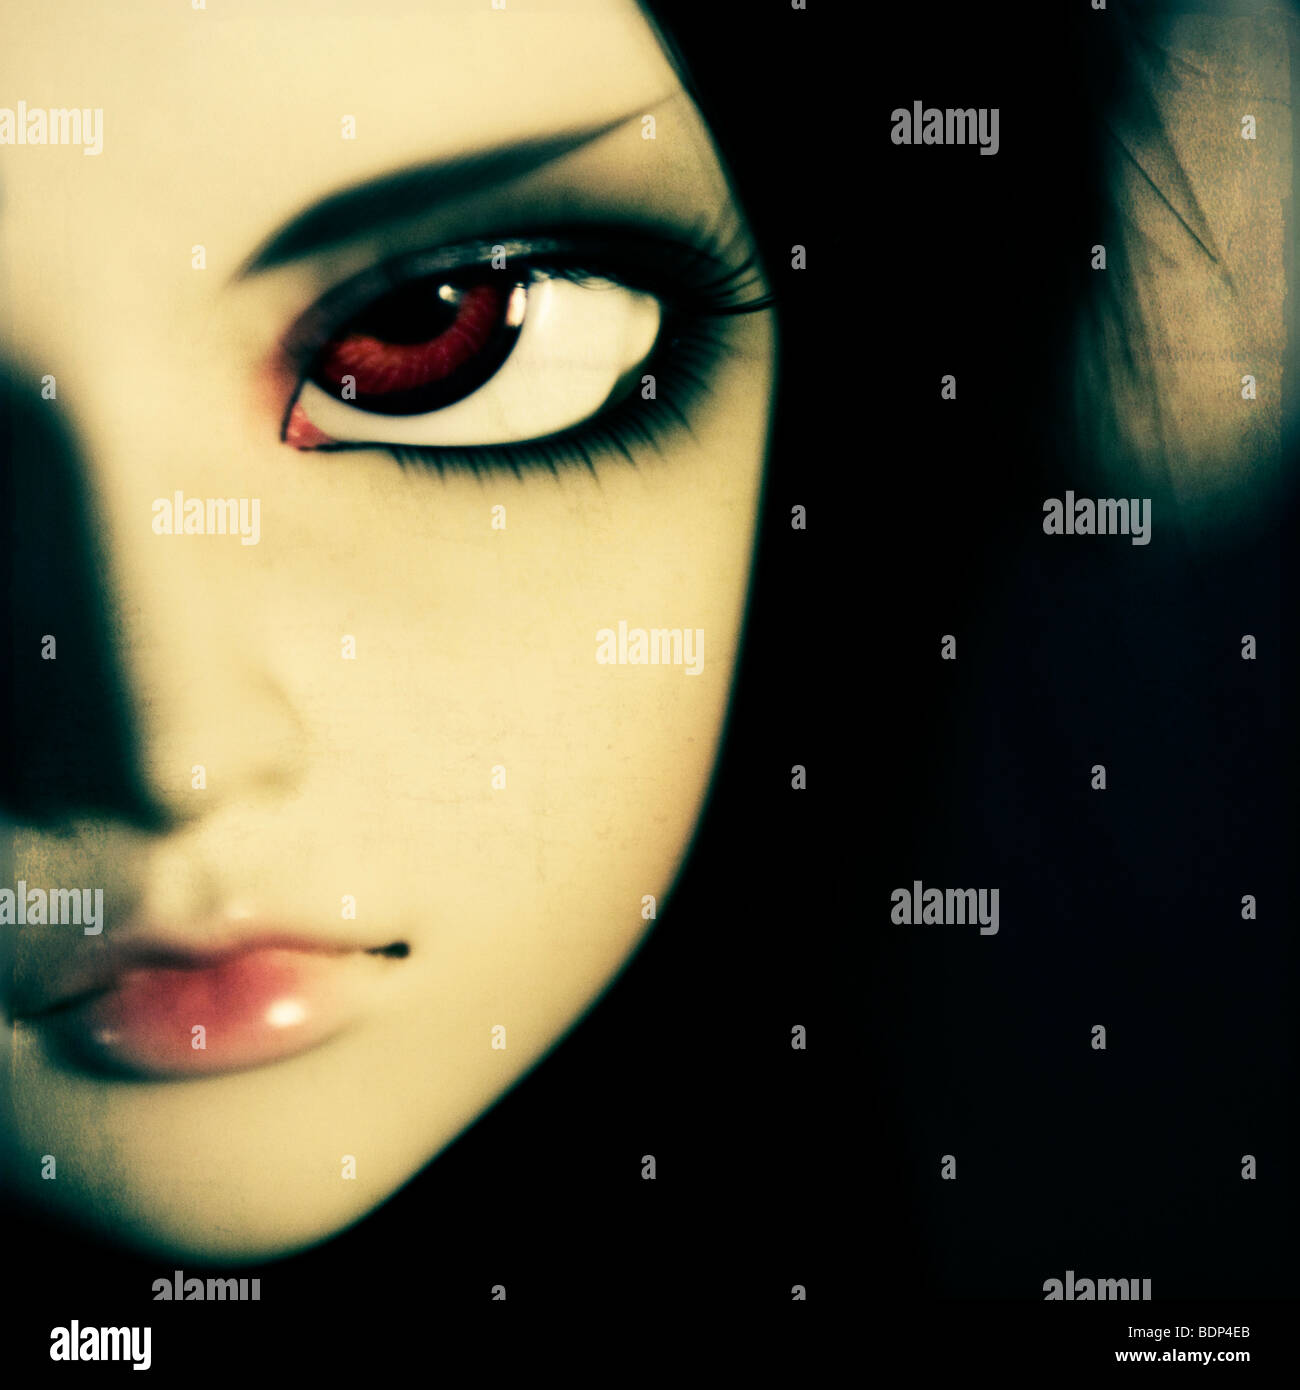 Close up of a sultry dolls face with large brown eyes - Stock Image